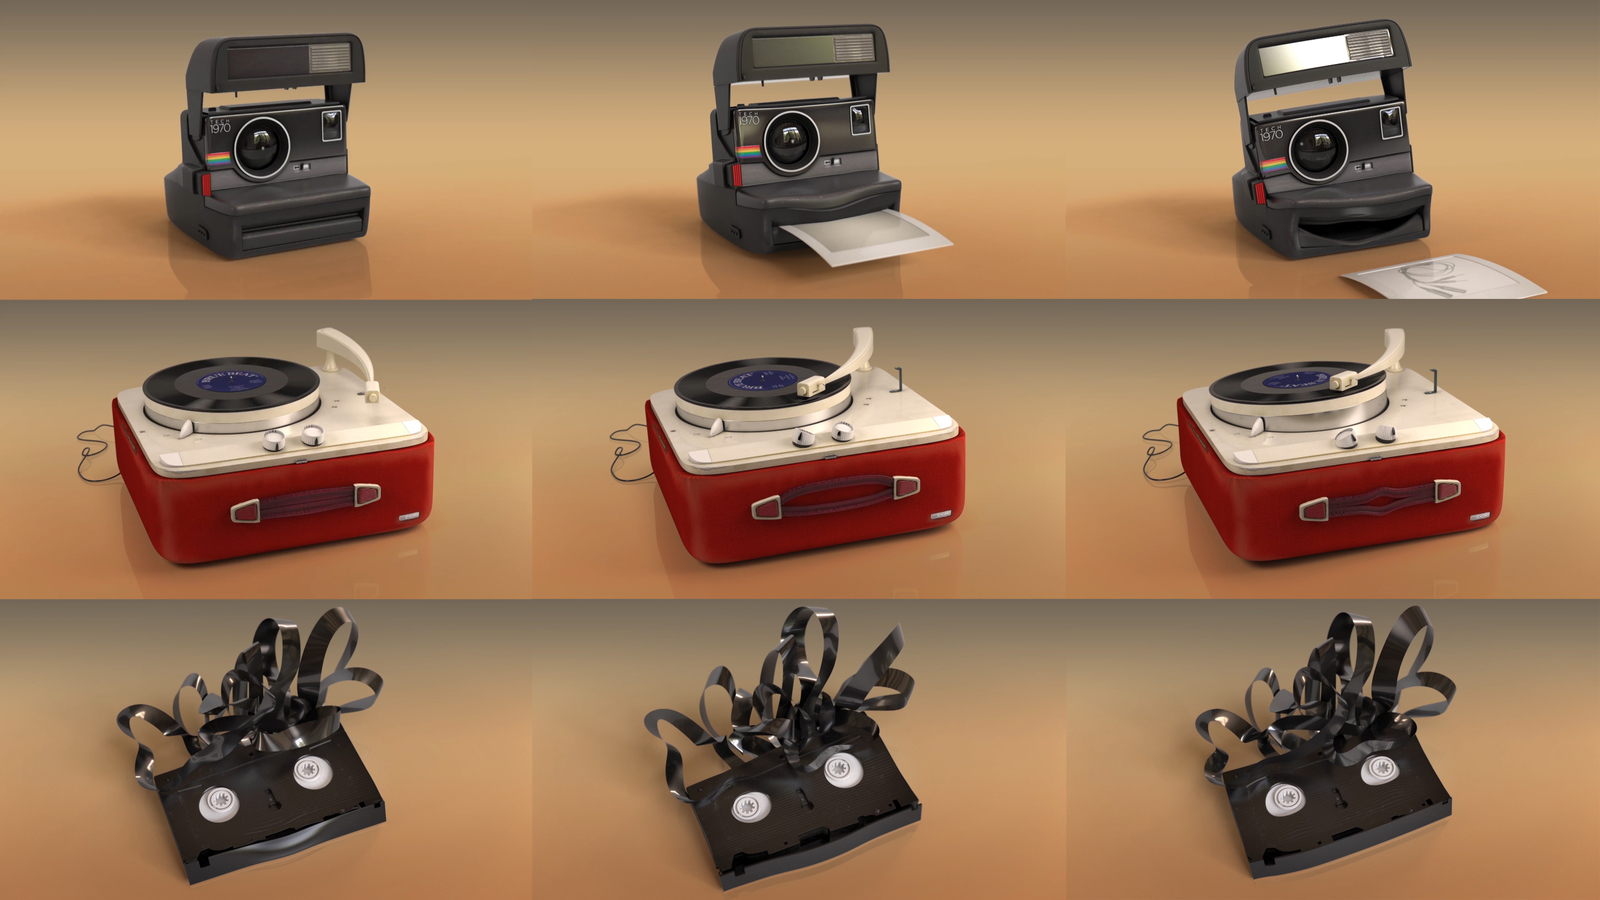 Series of frames from the change is good animations; instant camera, record player, vhs.